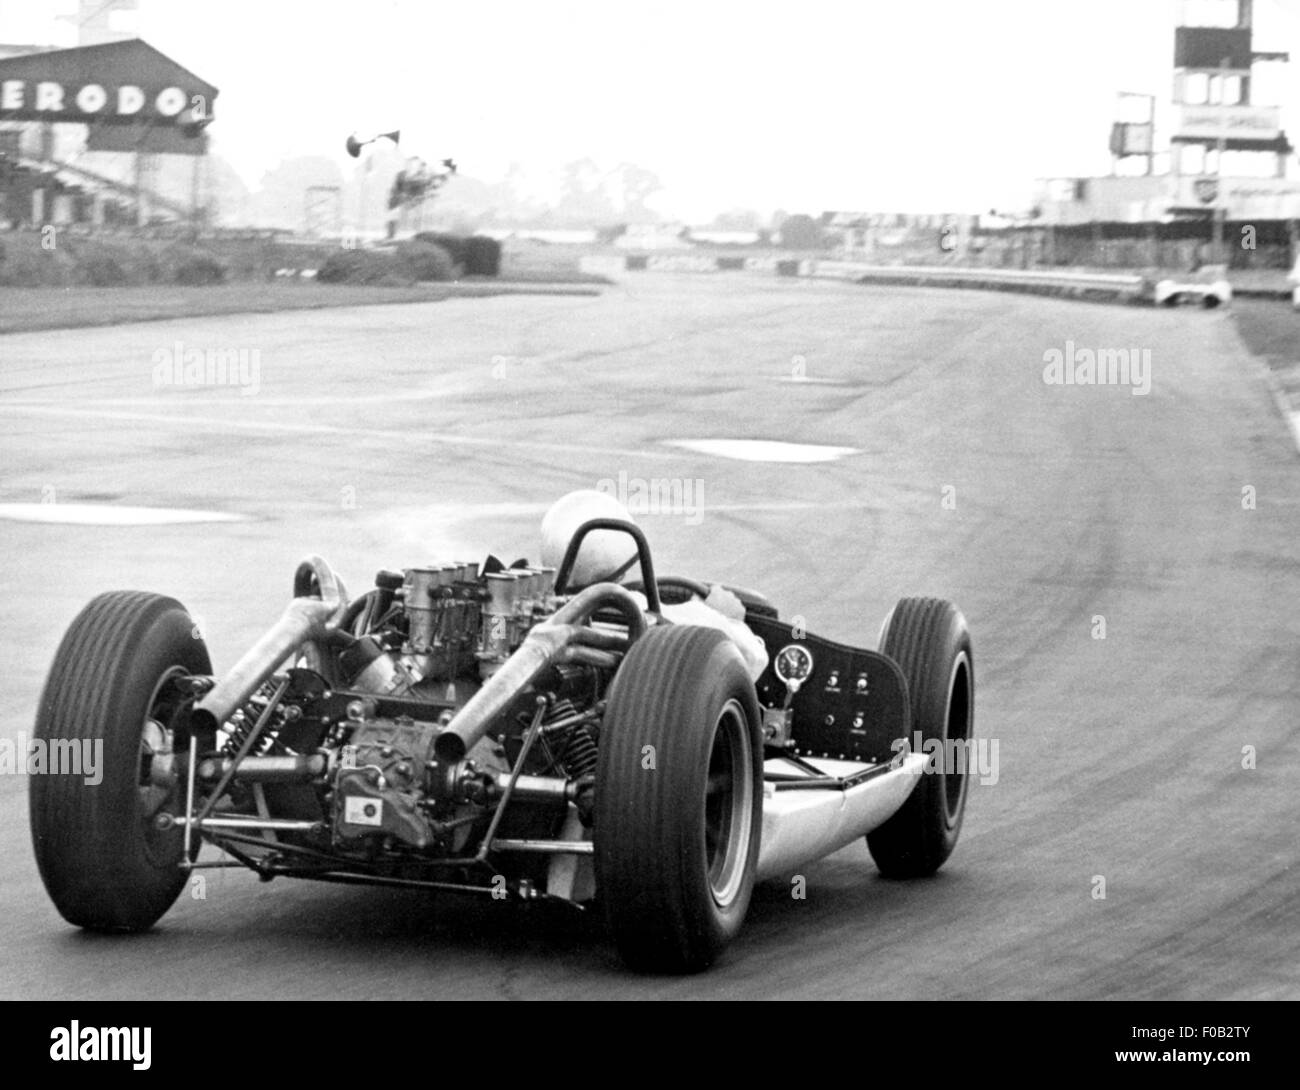 Bruce McLaren testing a sports car at Goodwood 1964 - Stock Image